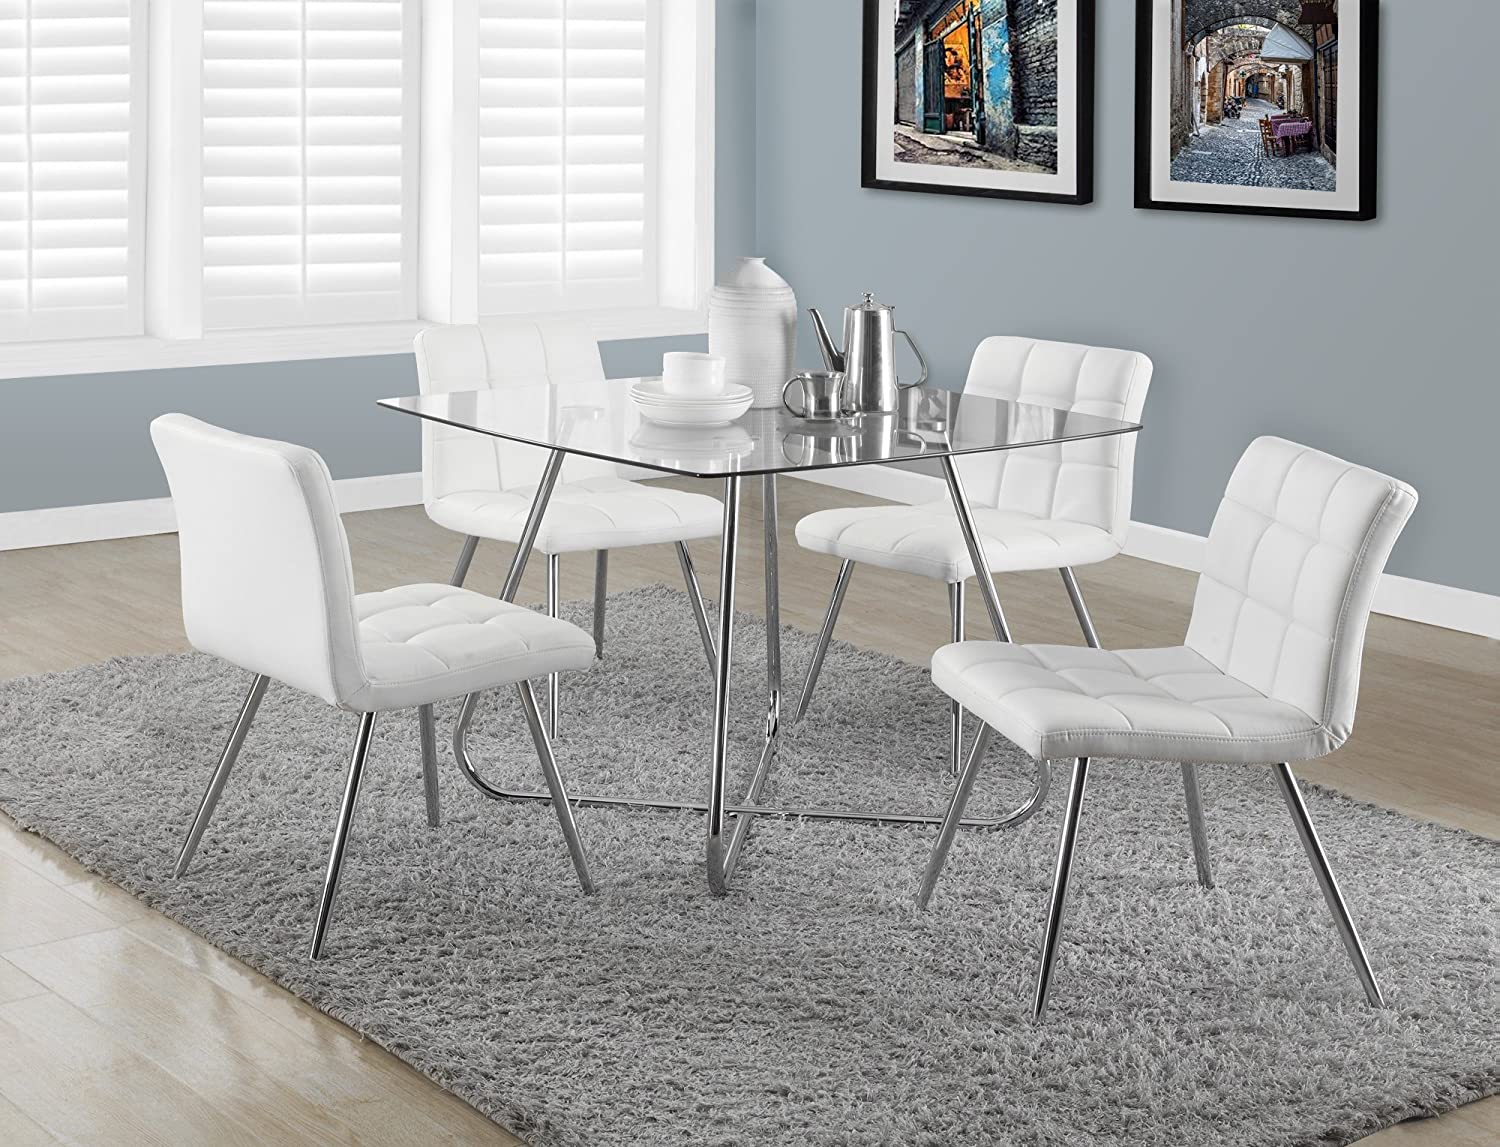 p en kitchen acadian room parson and grey chairs chair wood white furniture solid dining brown polyester depot armless home the seat decor with canada categories of set